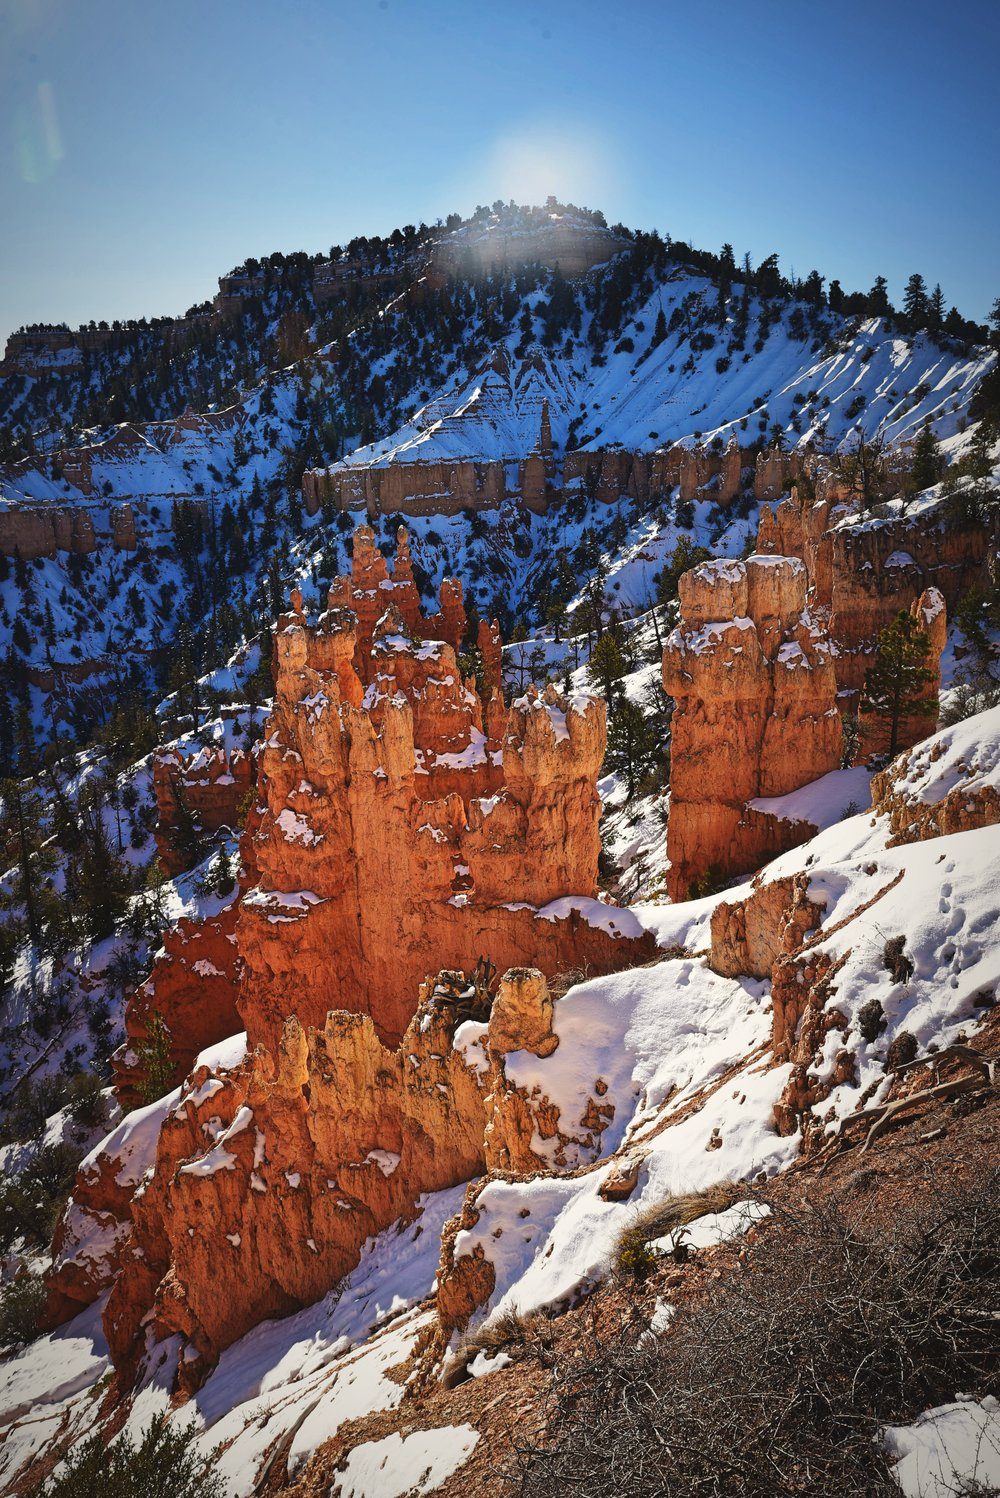 The hoodoos only look better with the snow on them.